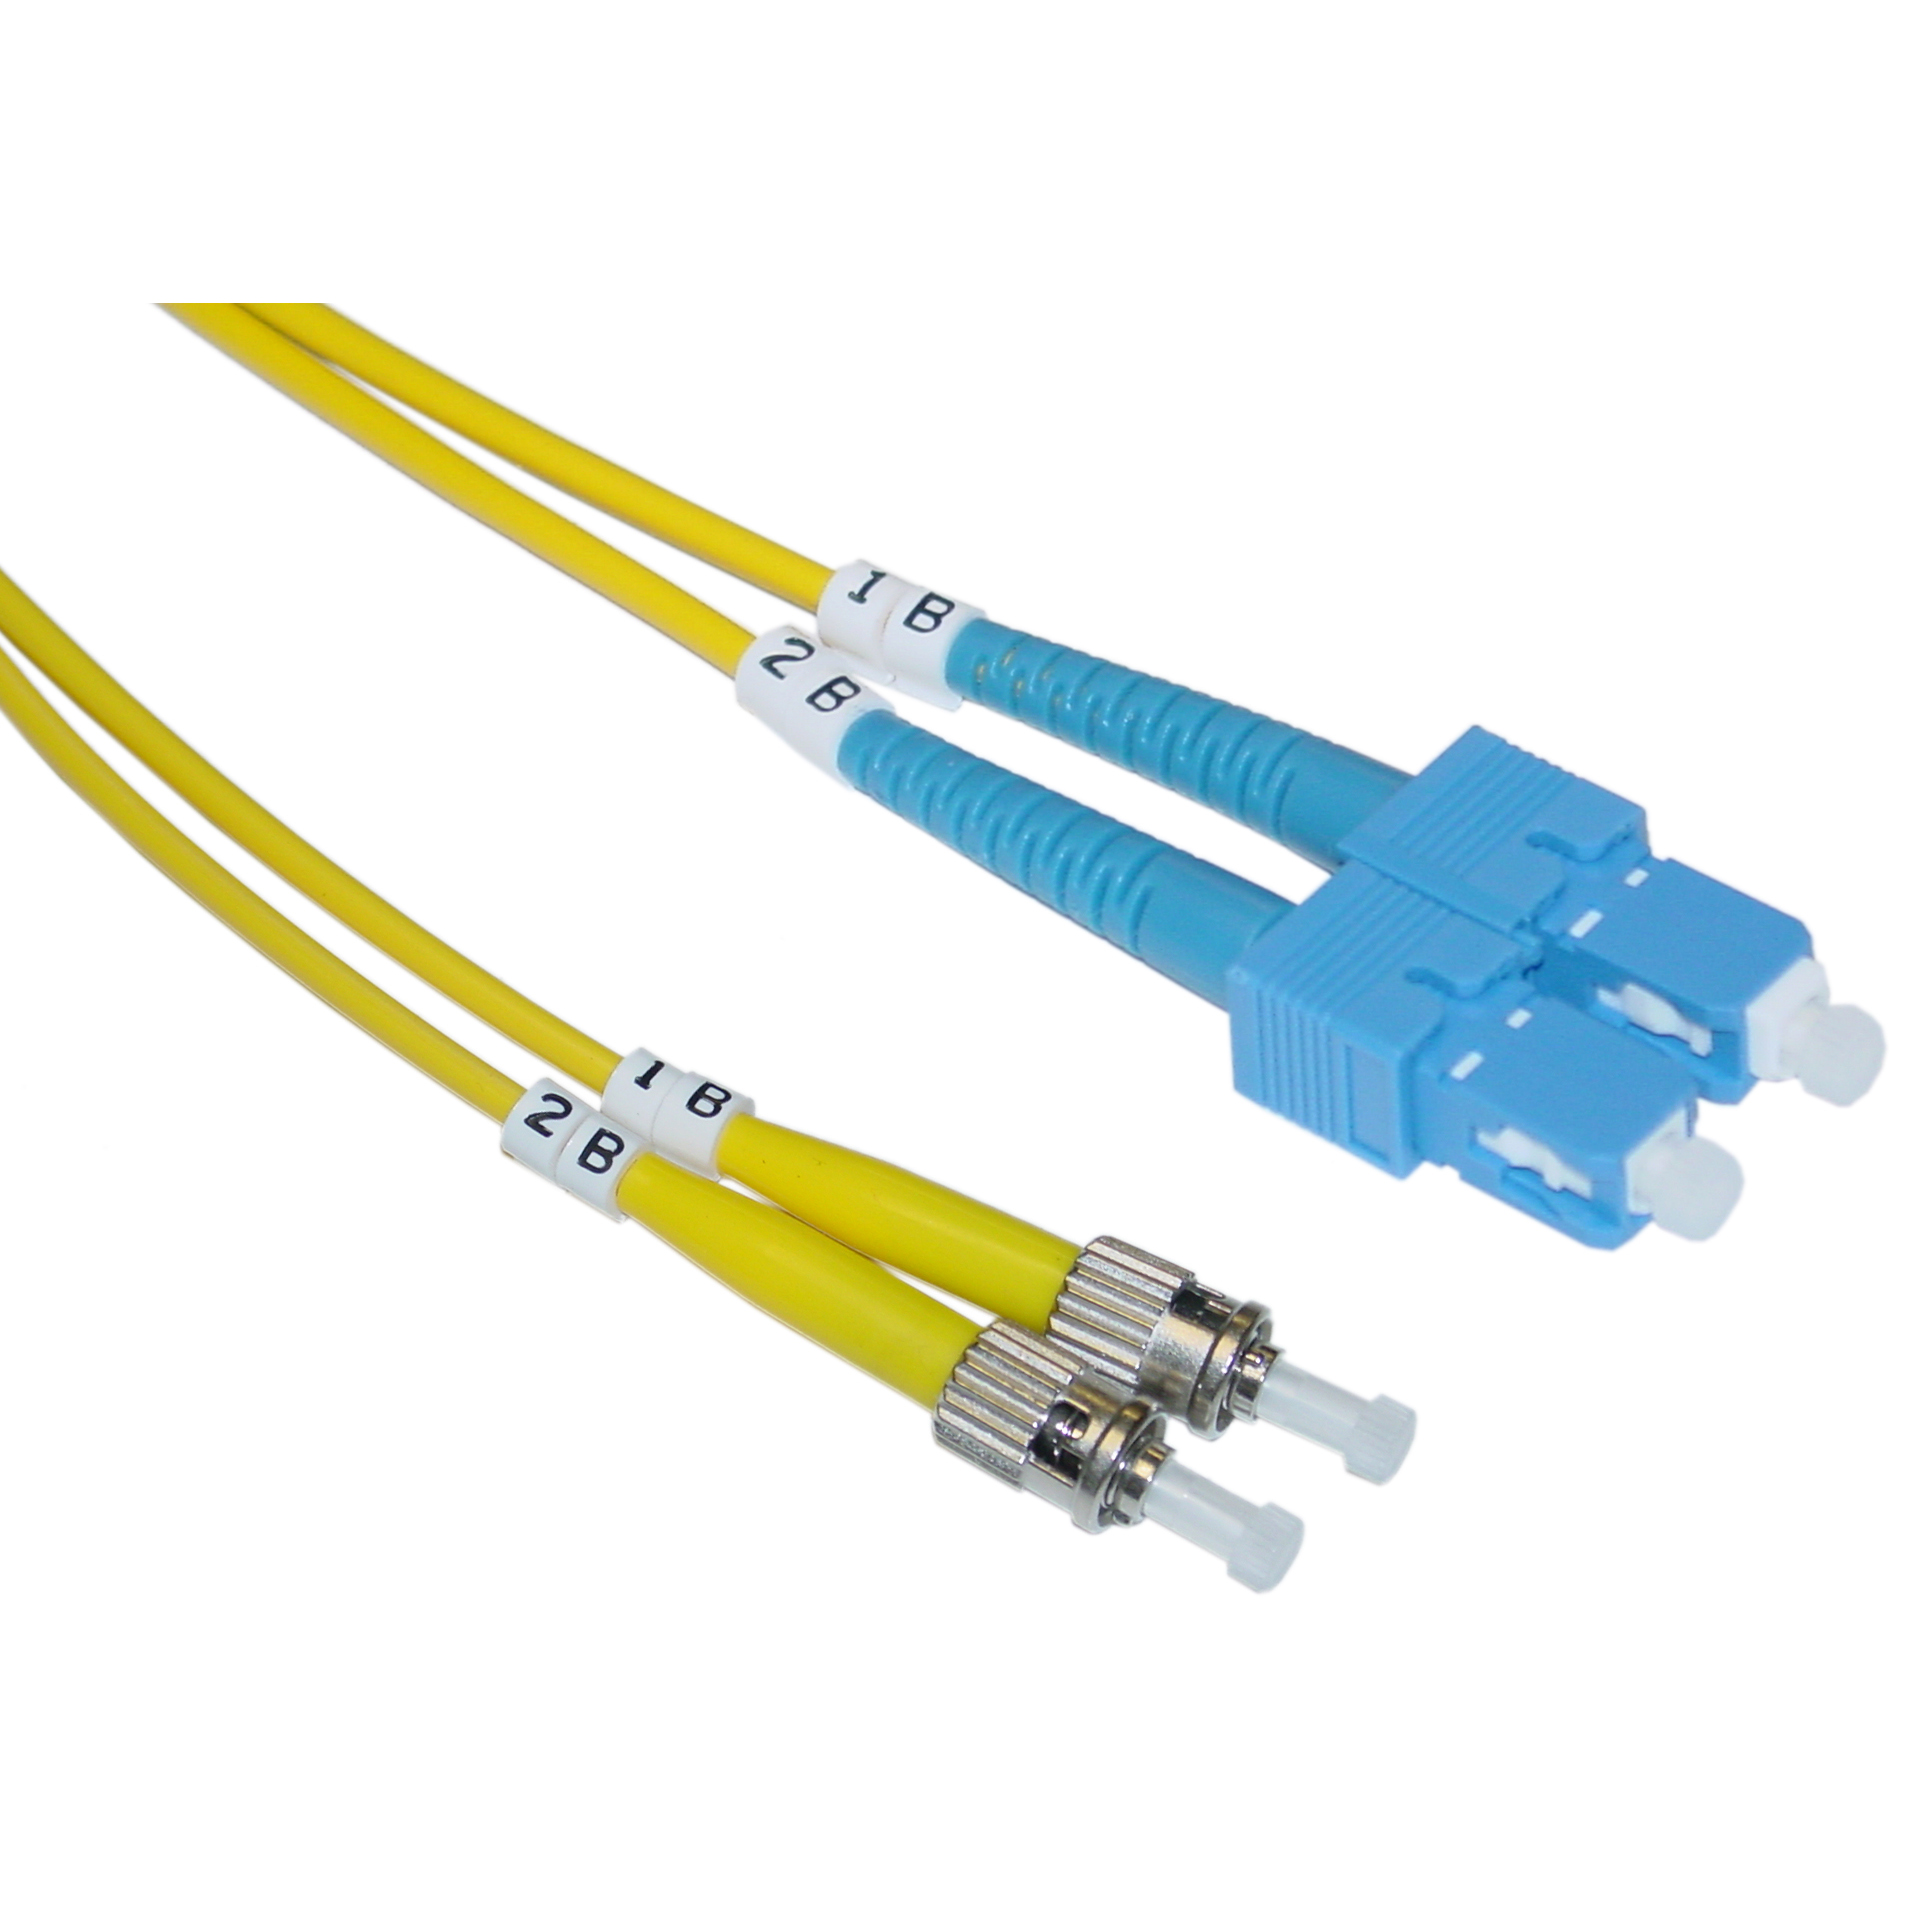 fiber optic cable An optical fiber or optical fibre is a flexible,  some fiber optic cable versions are reinforced with aramid yarns or glass yarns as intermediary strength member.